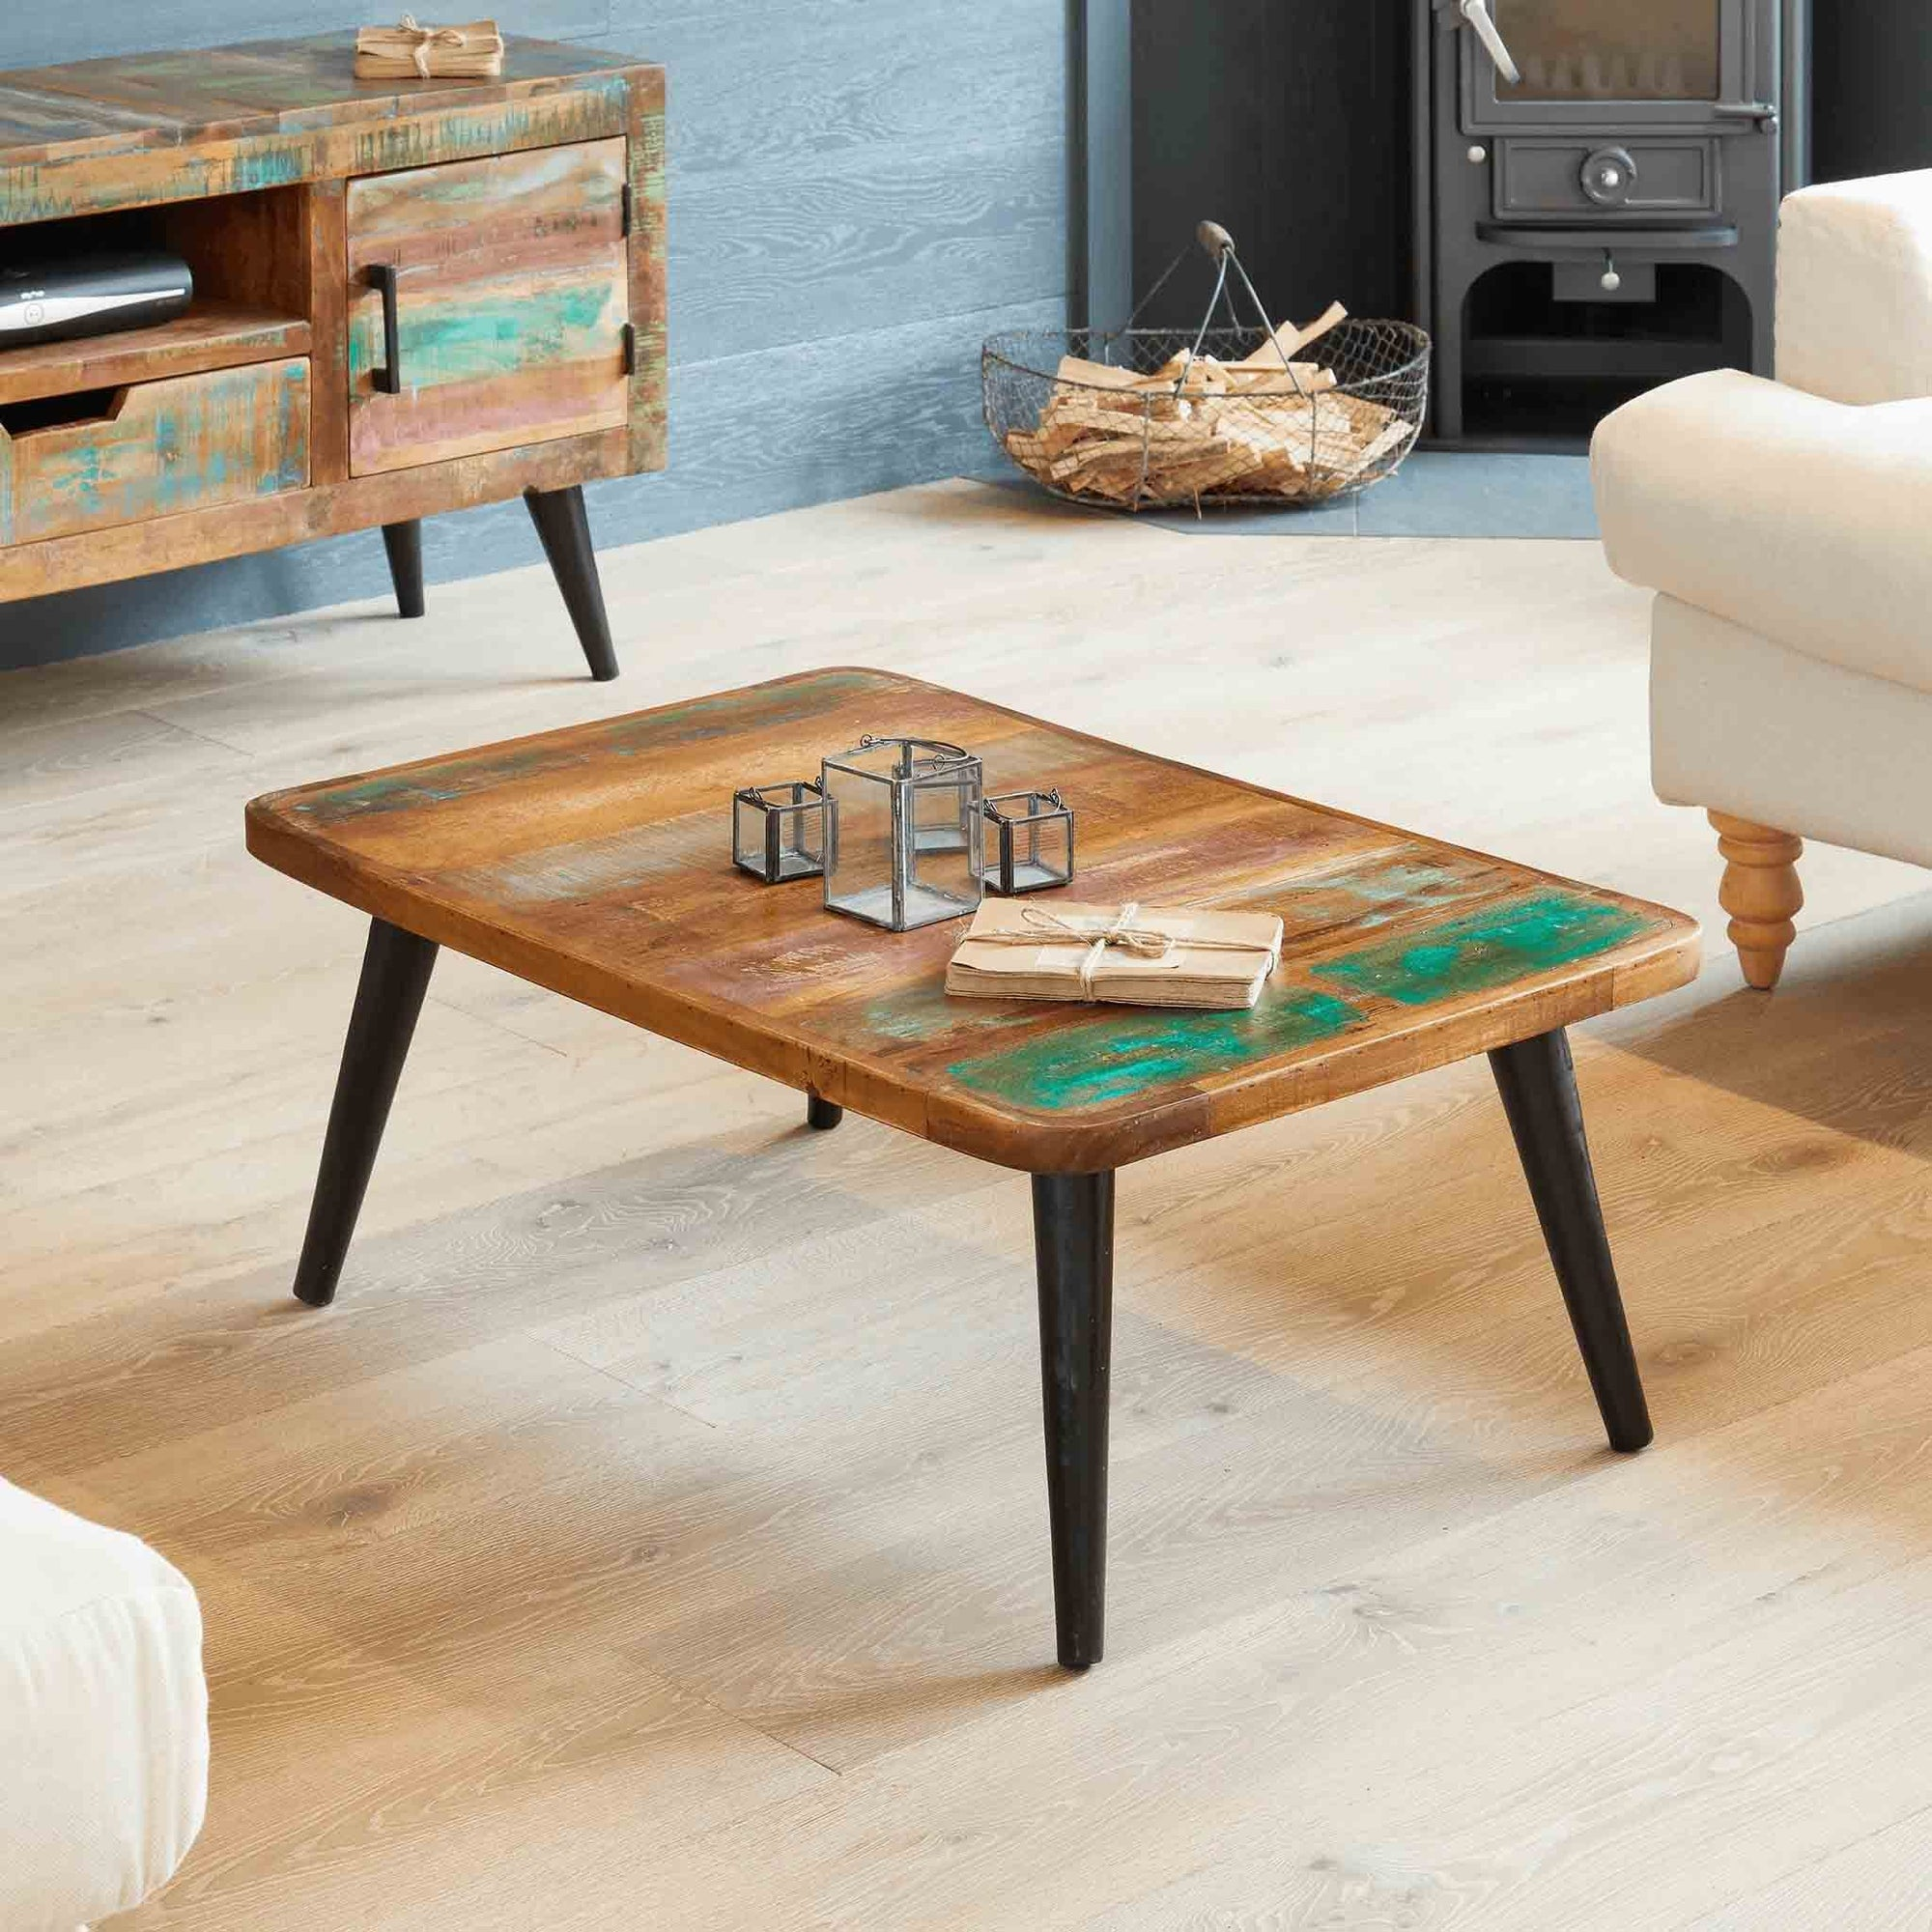 Coastal Chic Coffee Table by Roseland Furniture